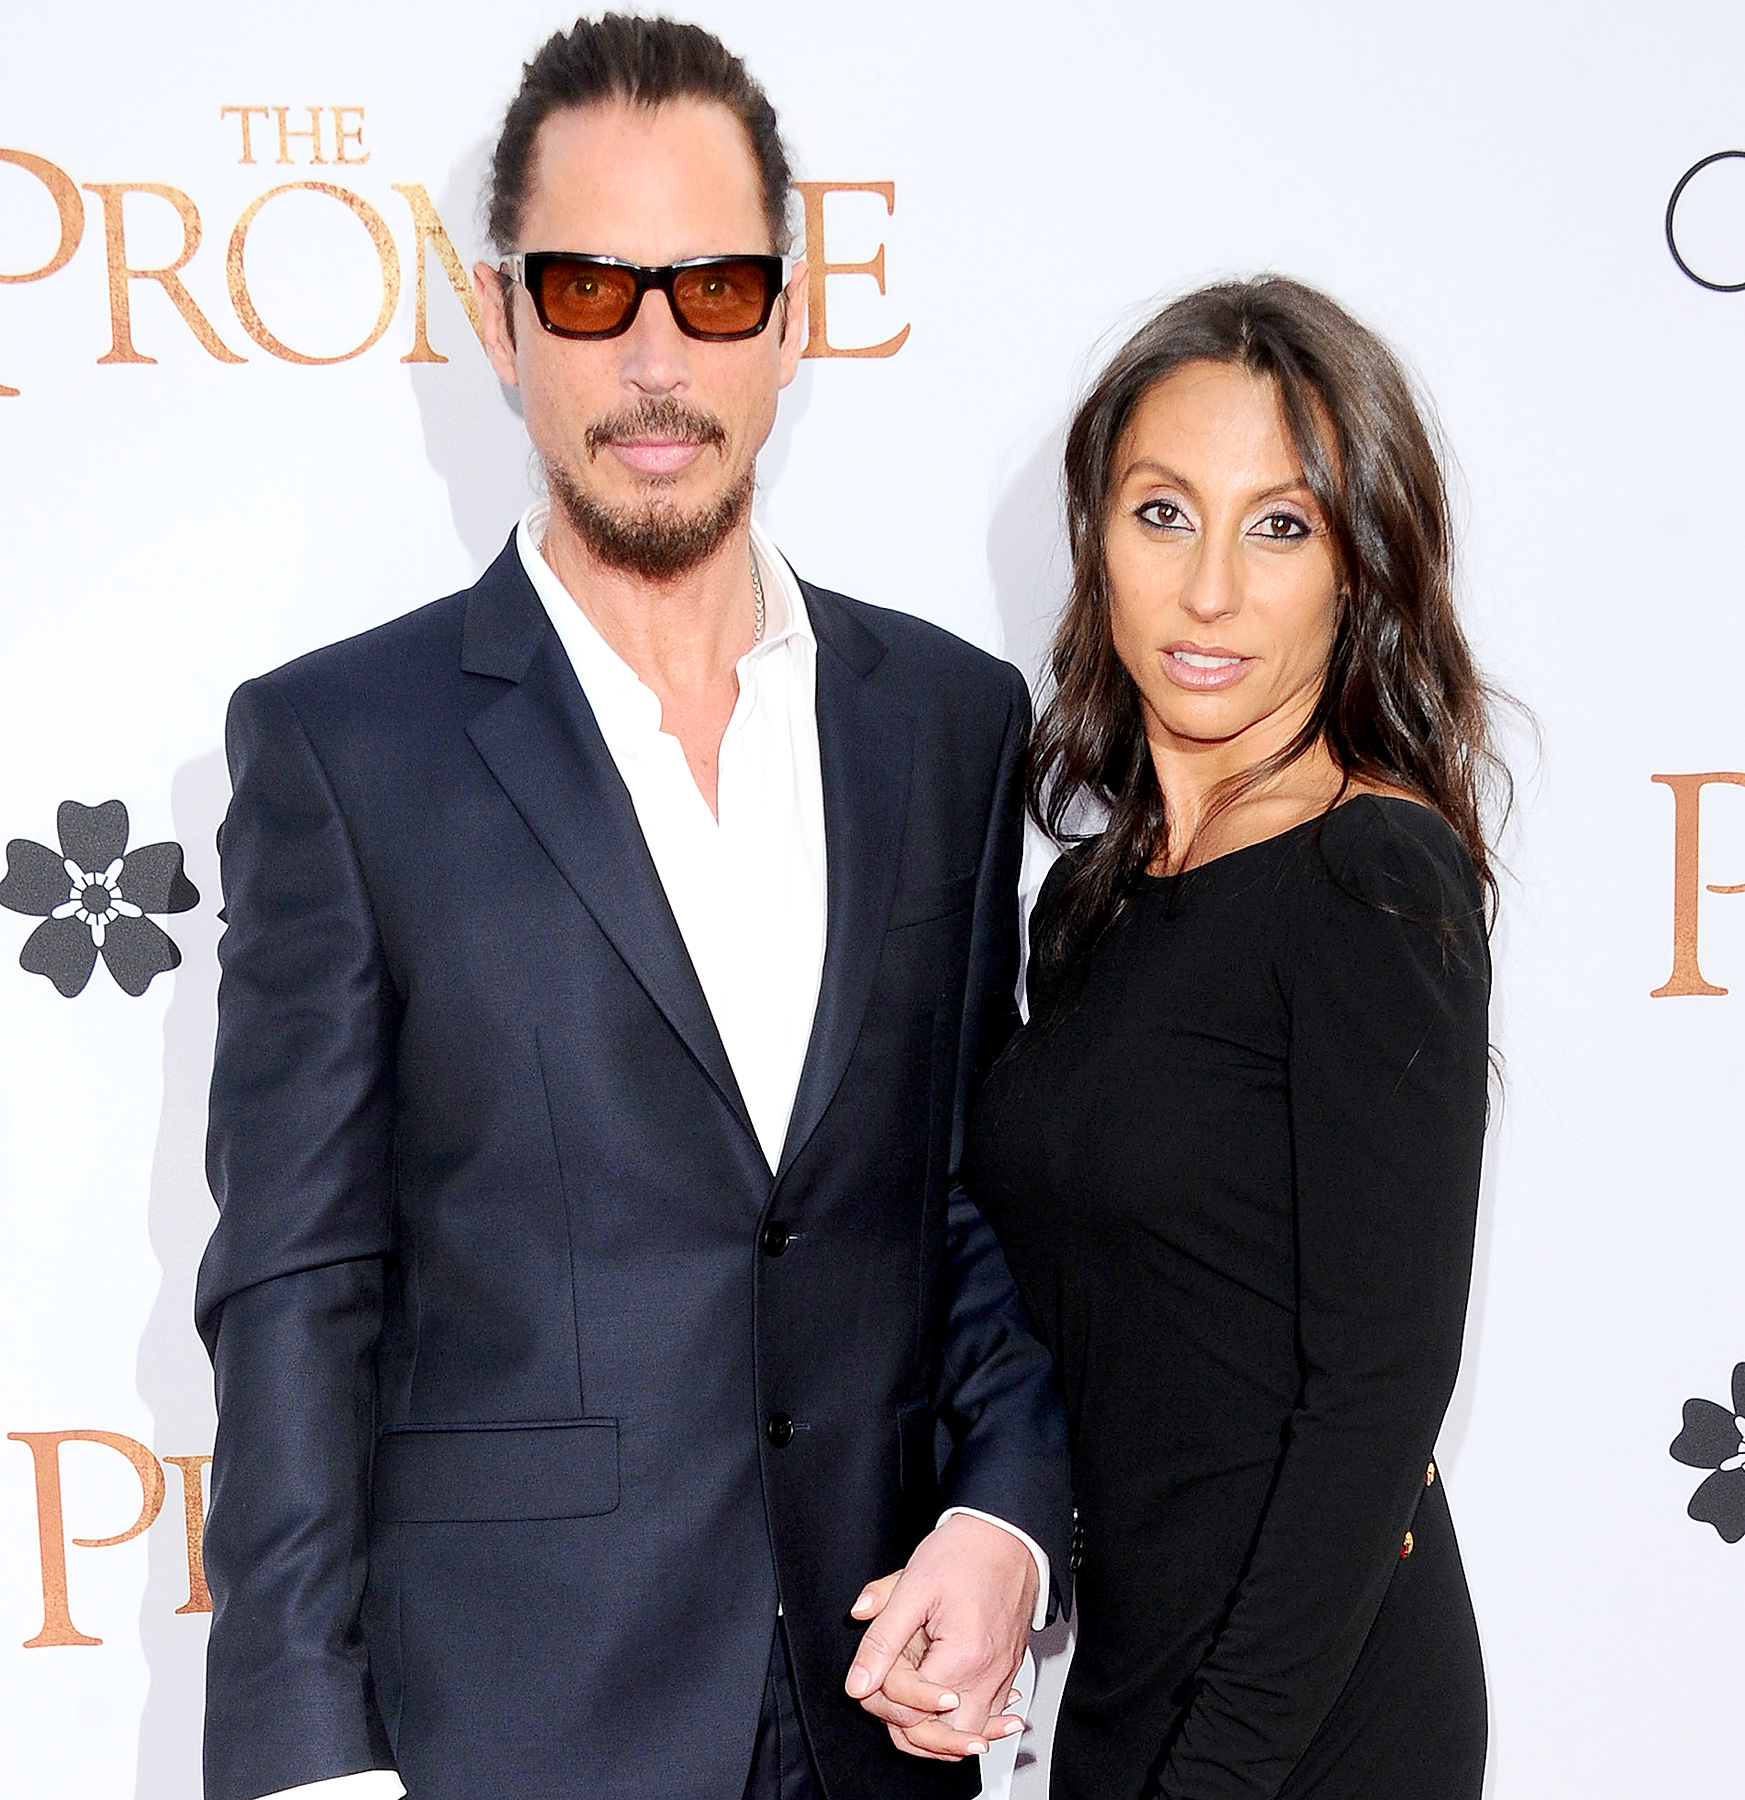 Chris Cornell and Vicky Karayiannis at the Los Angeles Premiere of The Promise at TCL Chinese Theatre on April 12, 2017.